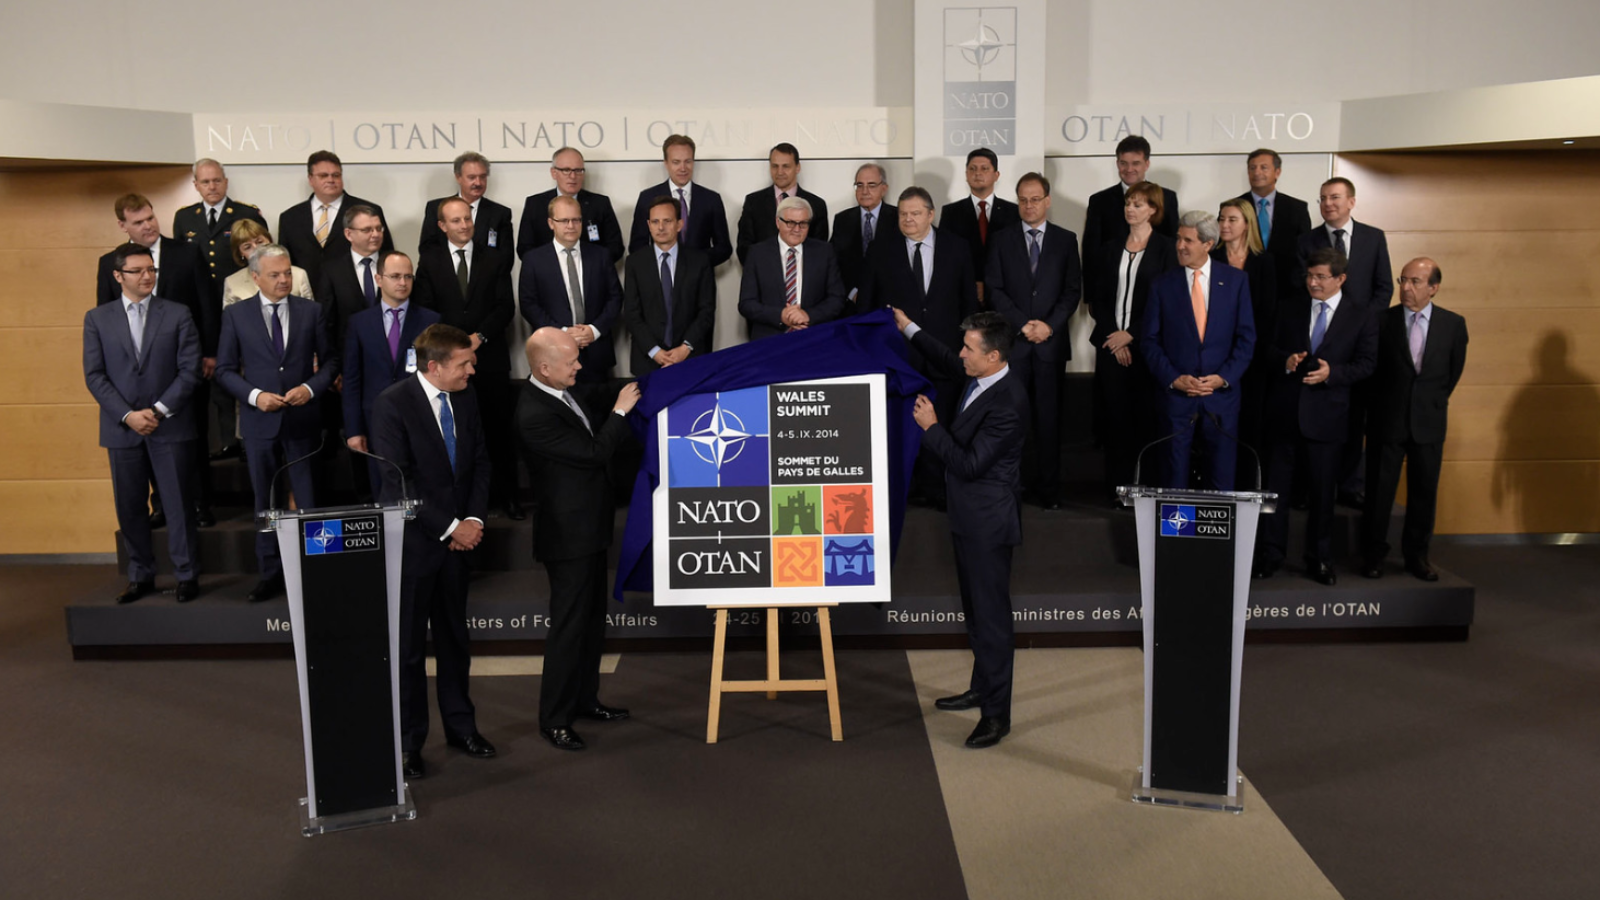 Leaders of NATO countries stand on a stage and look on as the Secretaries of State from the UK and Wales unveil the logo of the 2014 NATO Summit in Wales.